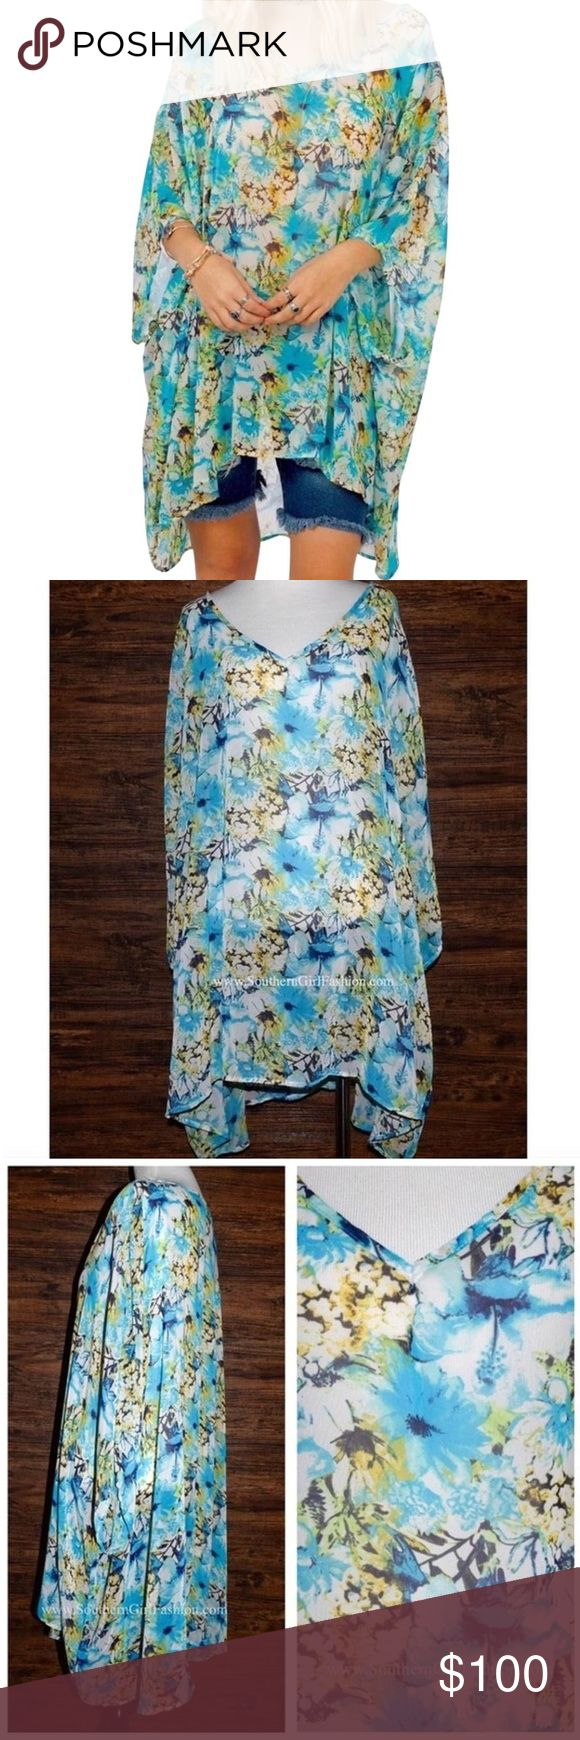 SWING TUNIC Bohemian Printed Pullover Kimono Top Available Sizes: Small and Medium.  Brand New.    • Gorgeous floral printed swing tunic featuring an effortless, loose-fitting silhouette. • Dropped oversized armholes.  • V-neckline adds sophistication. • Much prettier in person; blue, green & white.   • Polyester, unlined, made in the USA.  • Measurements provided in the comments section below.  {Southern Girl Fashion - Boutique Policy}   ✔️ Same-Business-Day Shipping (10am CT). ✔️ Price…